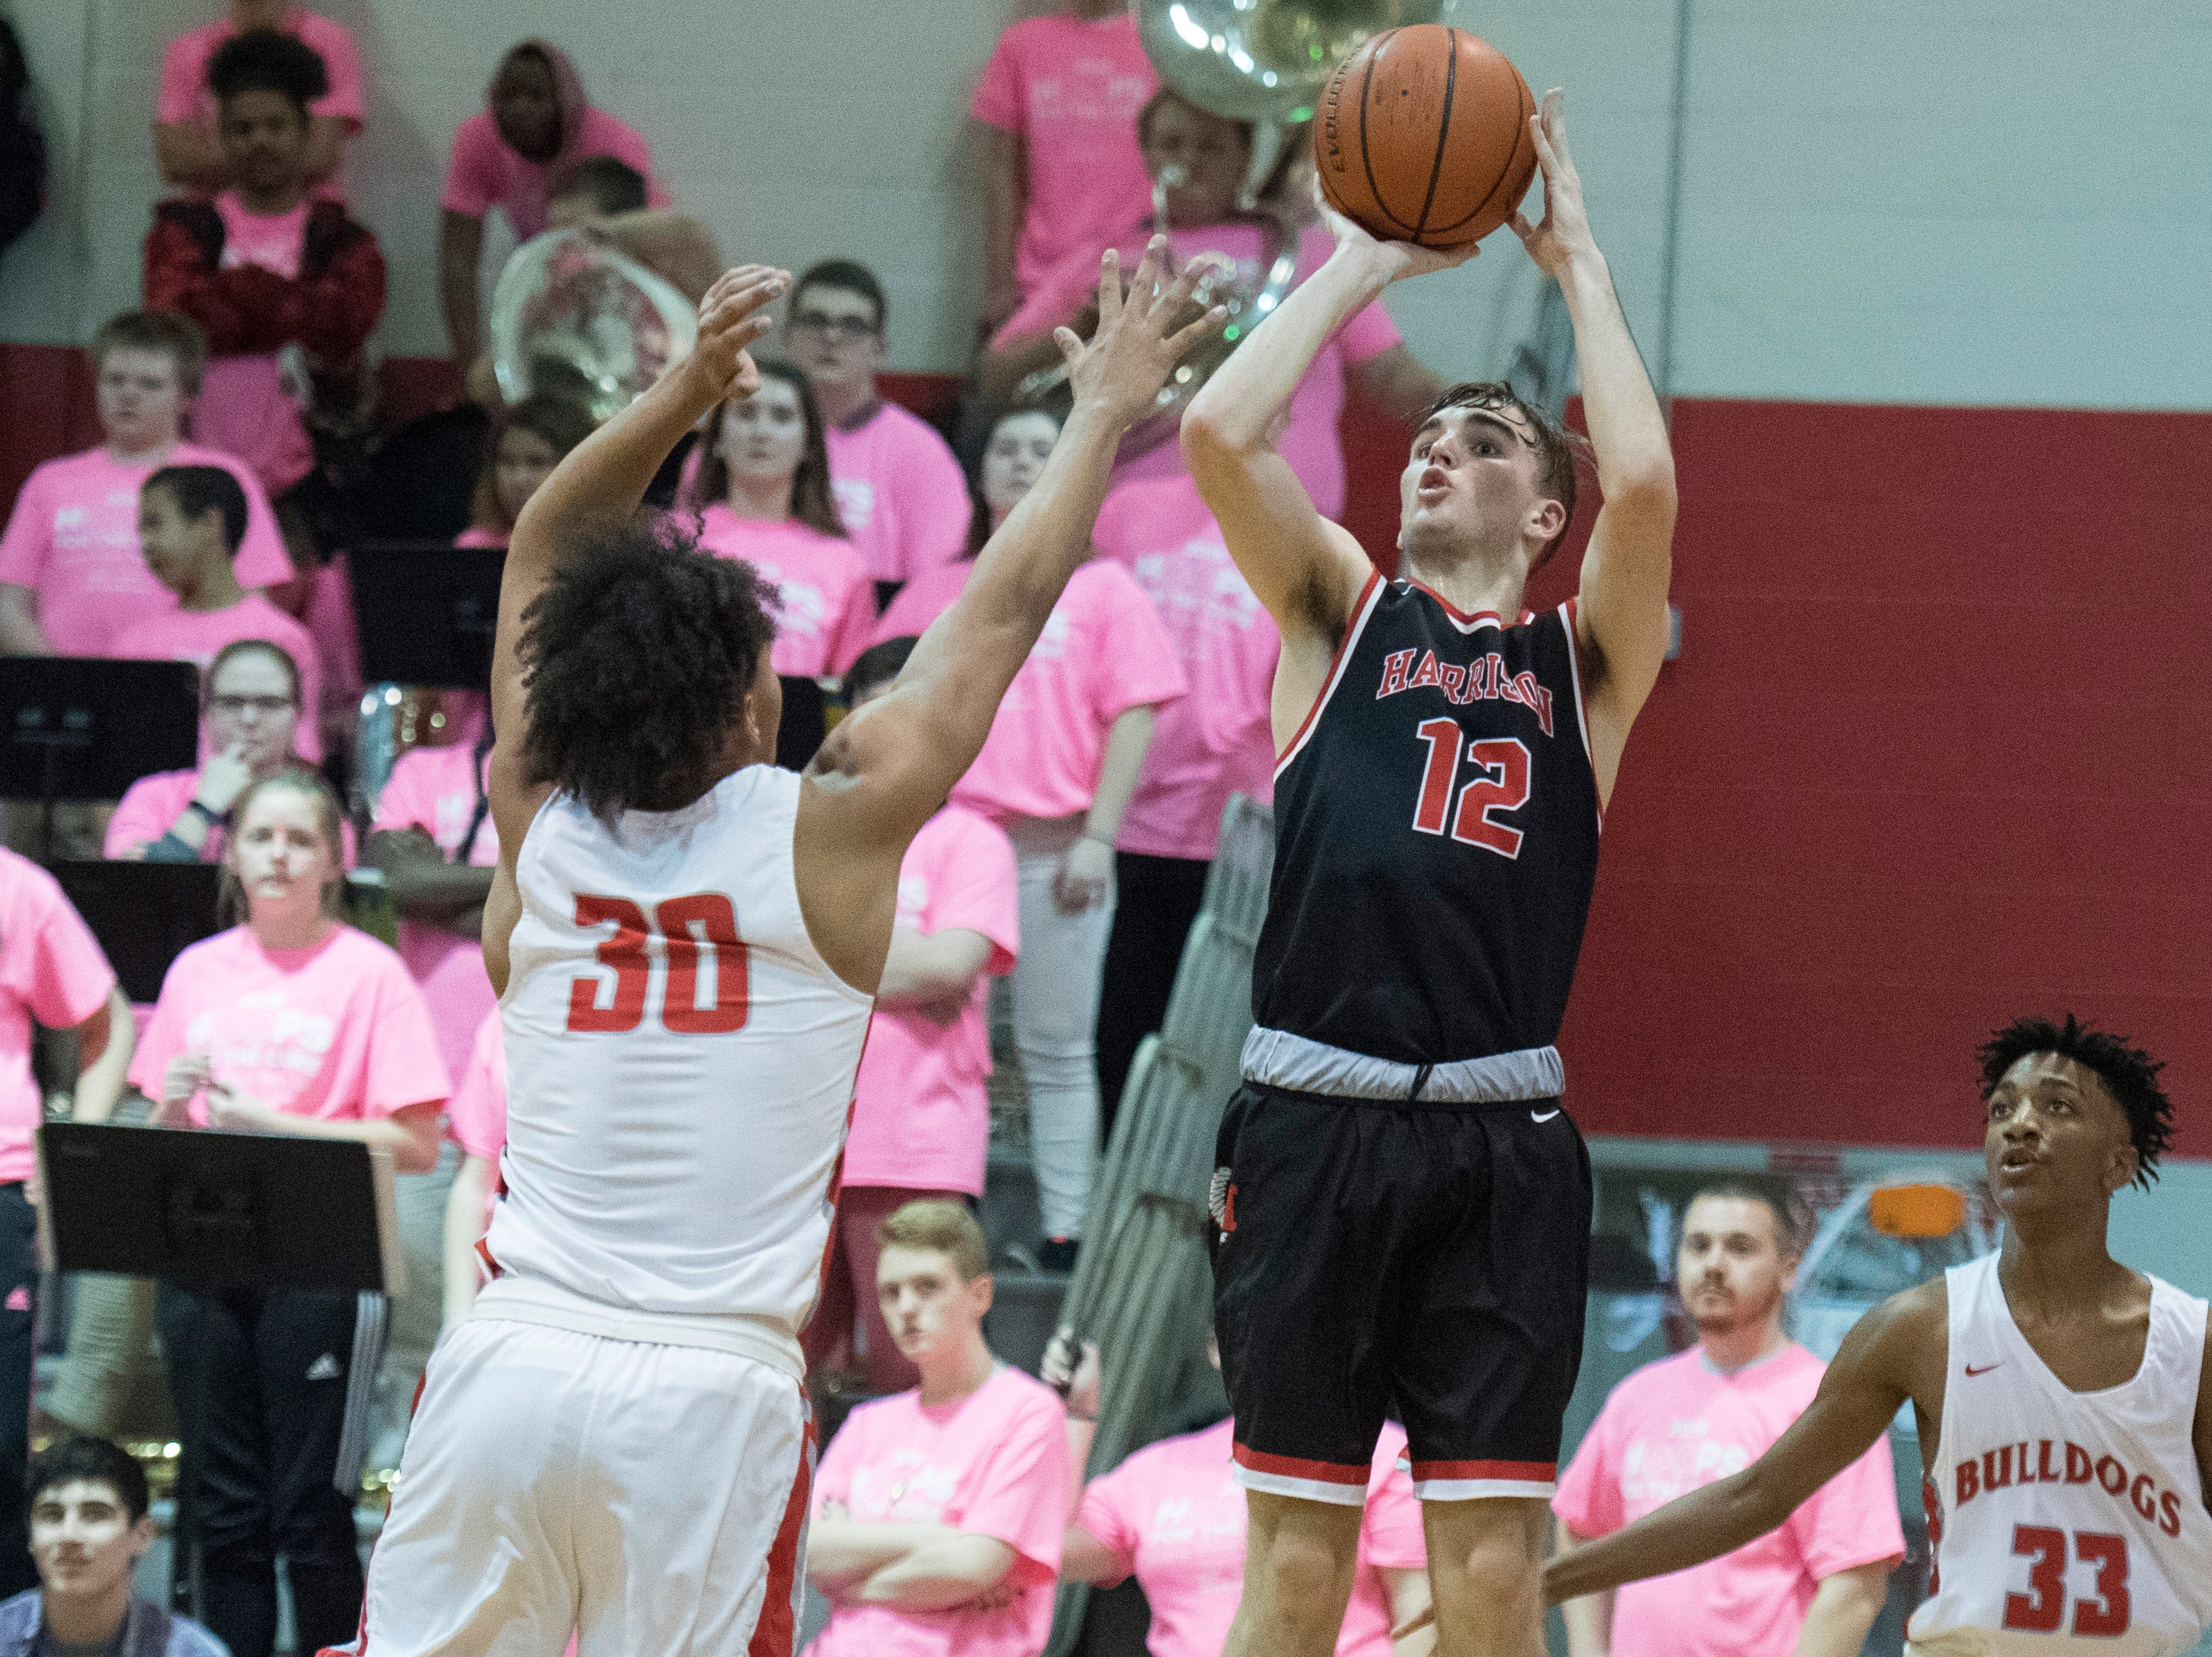 Harrison's Mason Bost (12) takes a 3-point shot during the Harrison vs Bosse game at Bosse High School Tuesday, Feb. 12, 2019. The Bosse Bulldogs won 74-56.